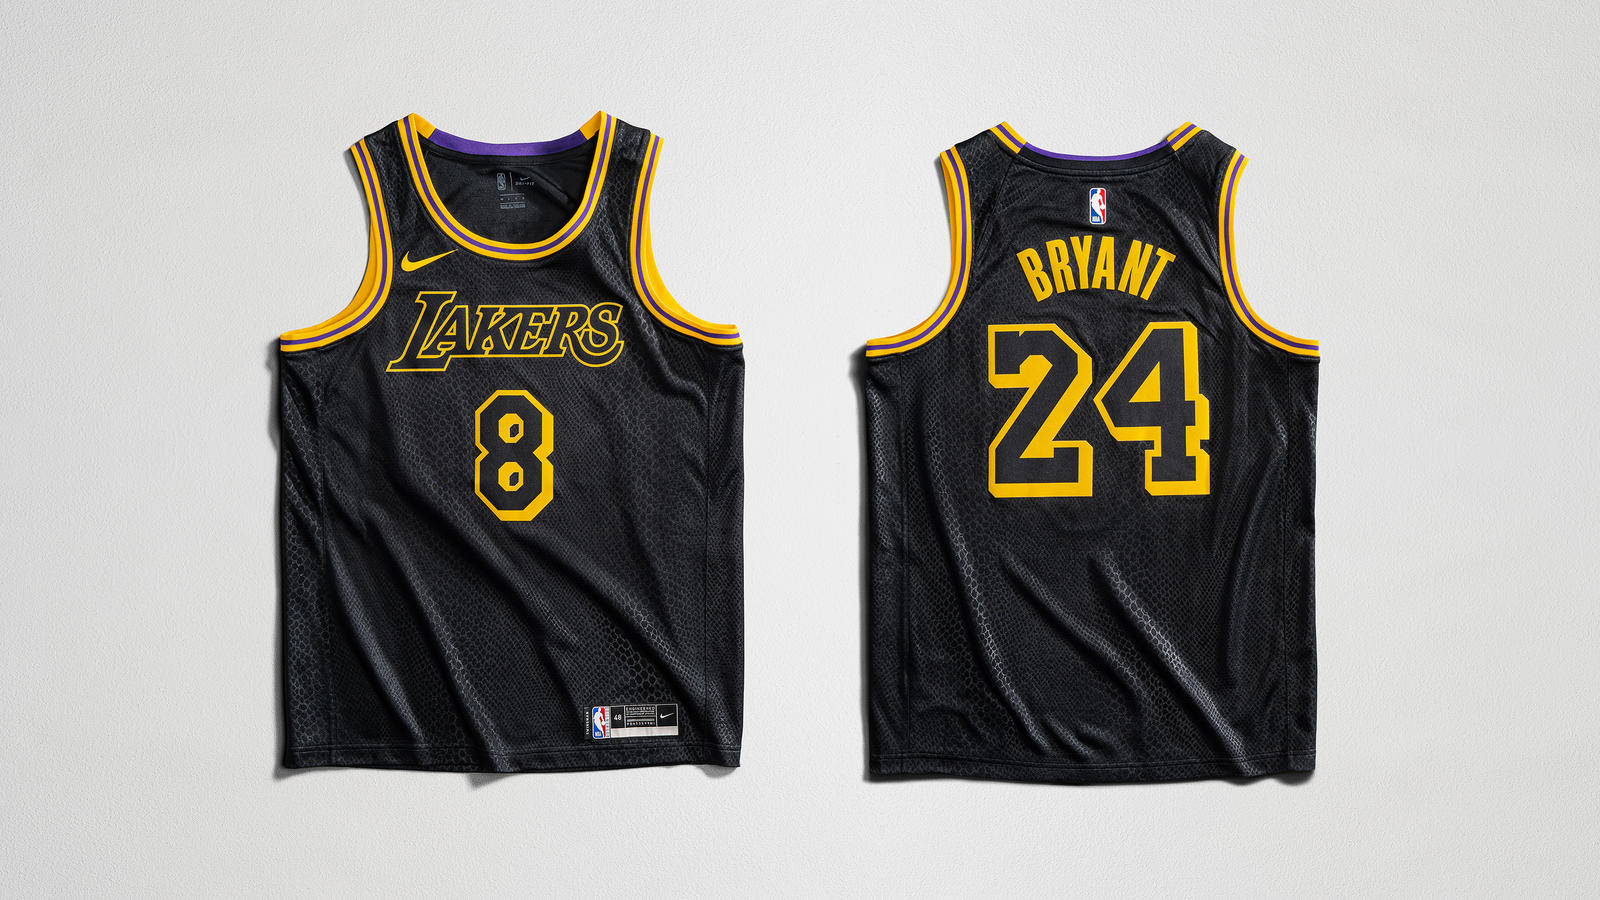 8月24日 発売予定 LAKERS EDITION JERSEY BLACK MAMBA (DJ0471-010)